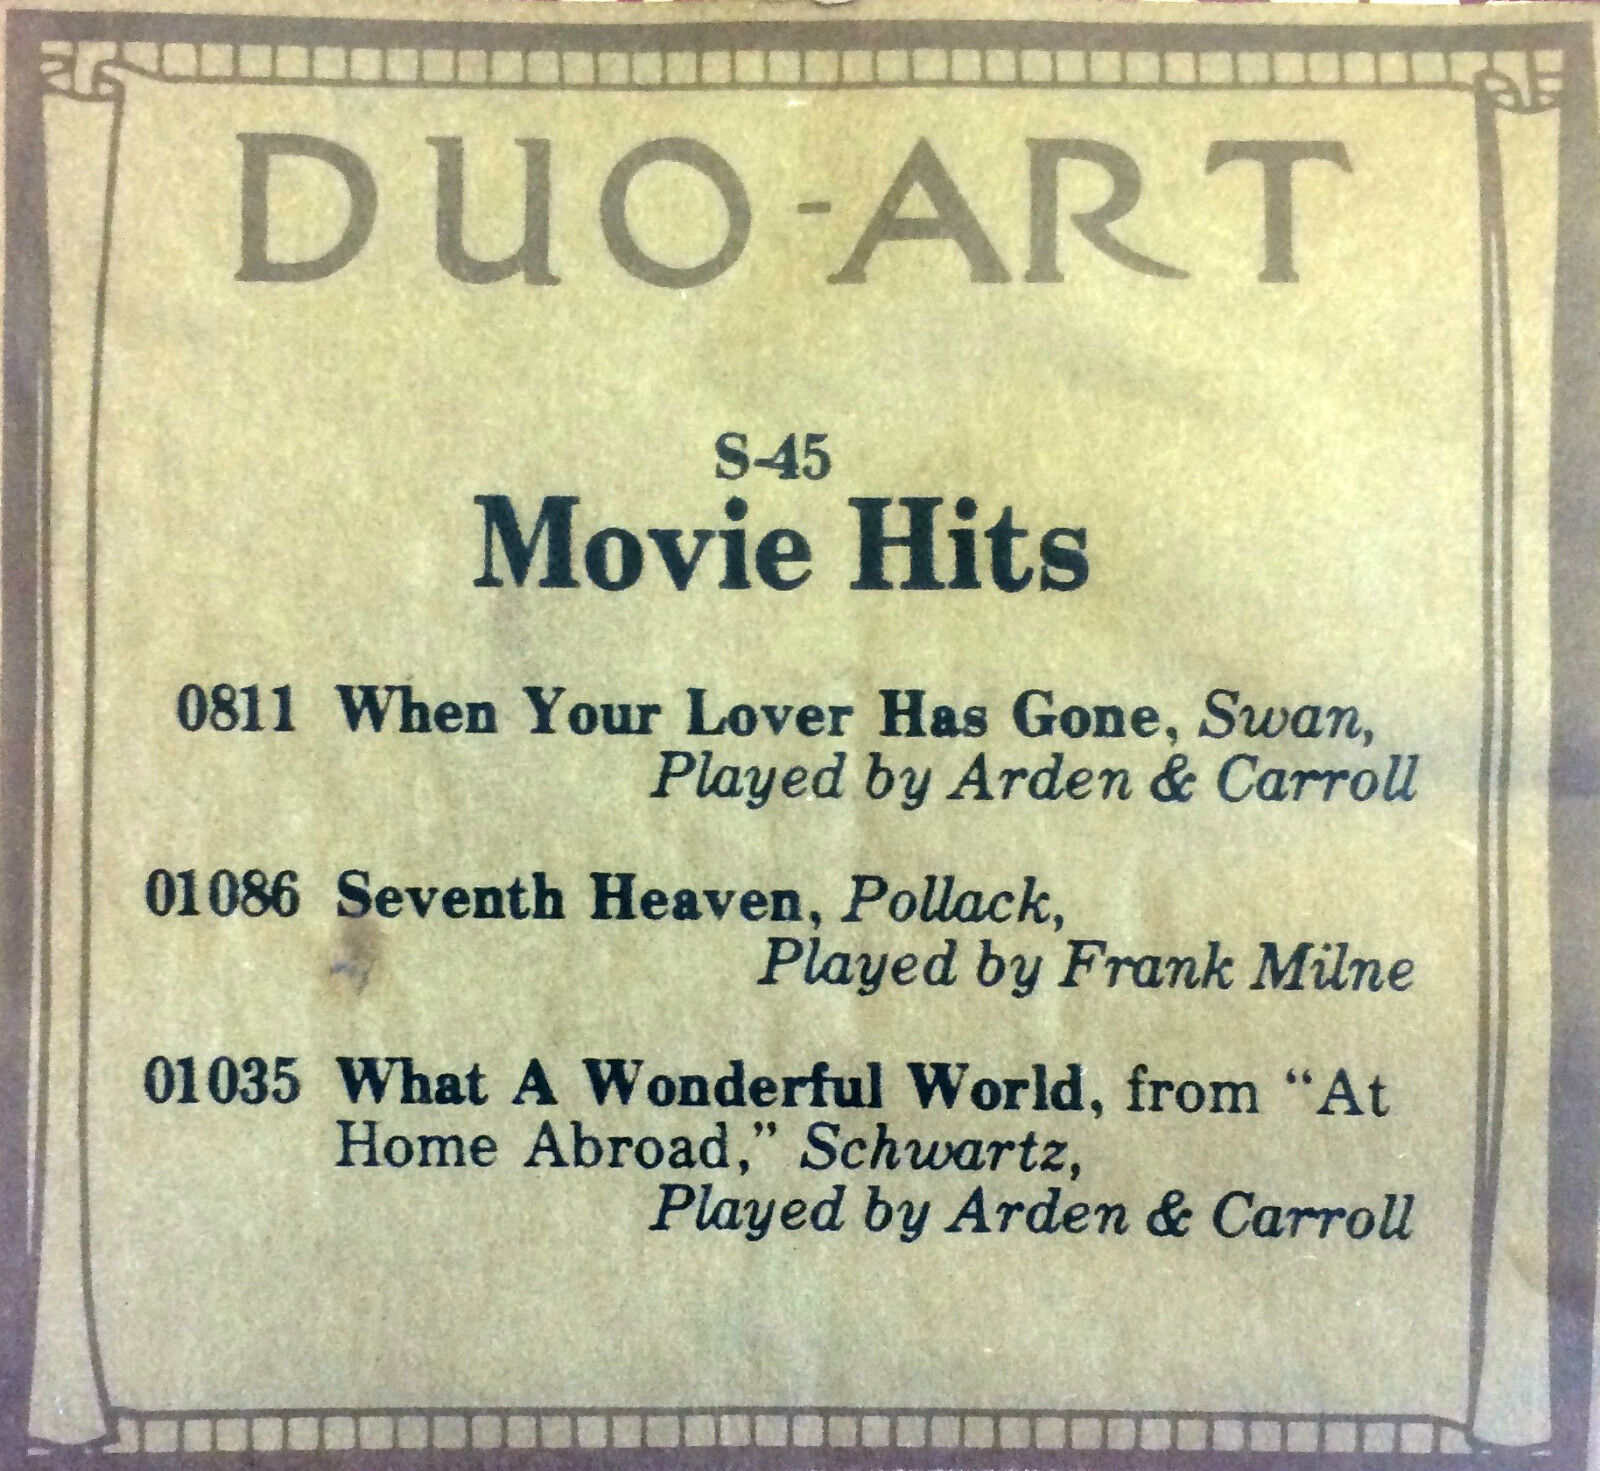 DUO-ART ReCut MOVIE HITS PROGRAM S-45 Large 3-Selection Player Piano Roll